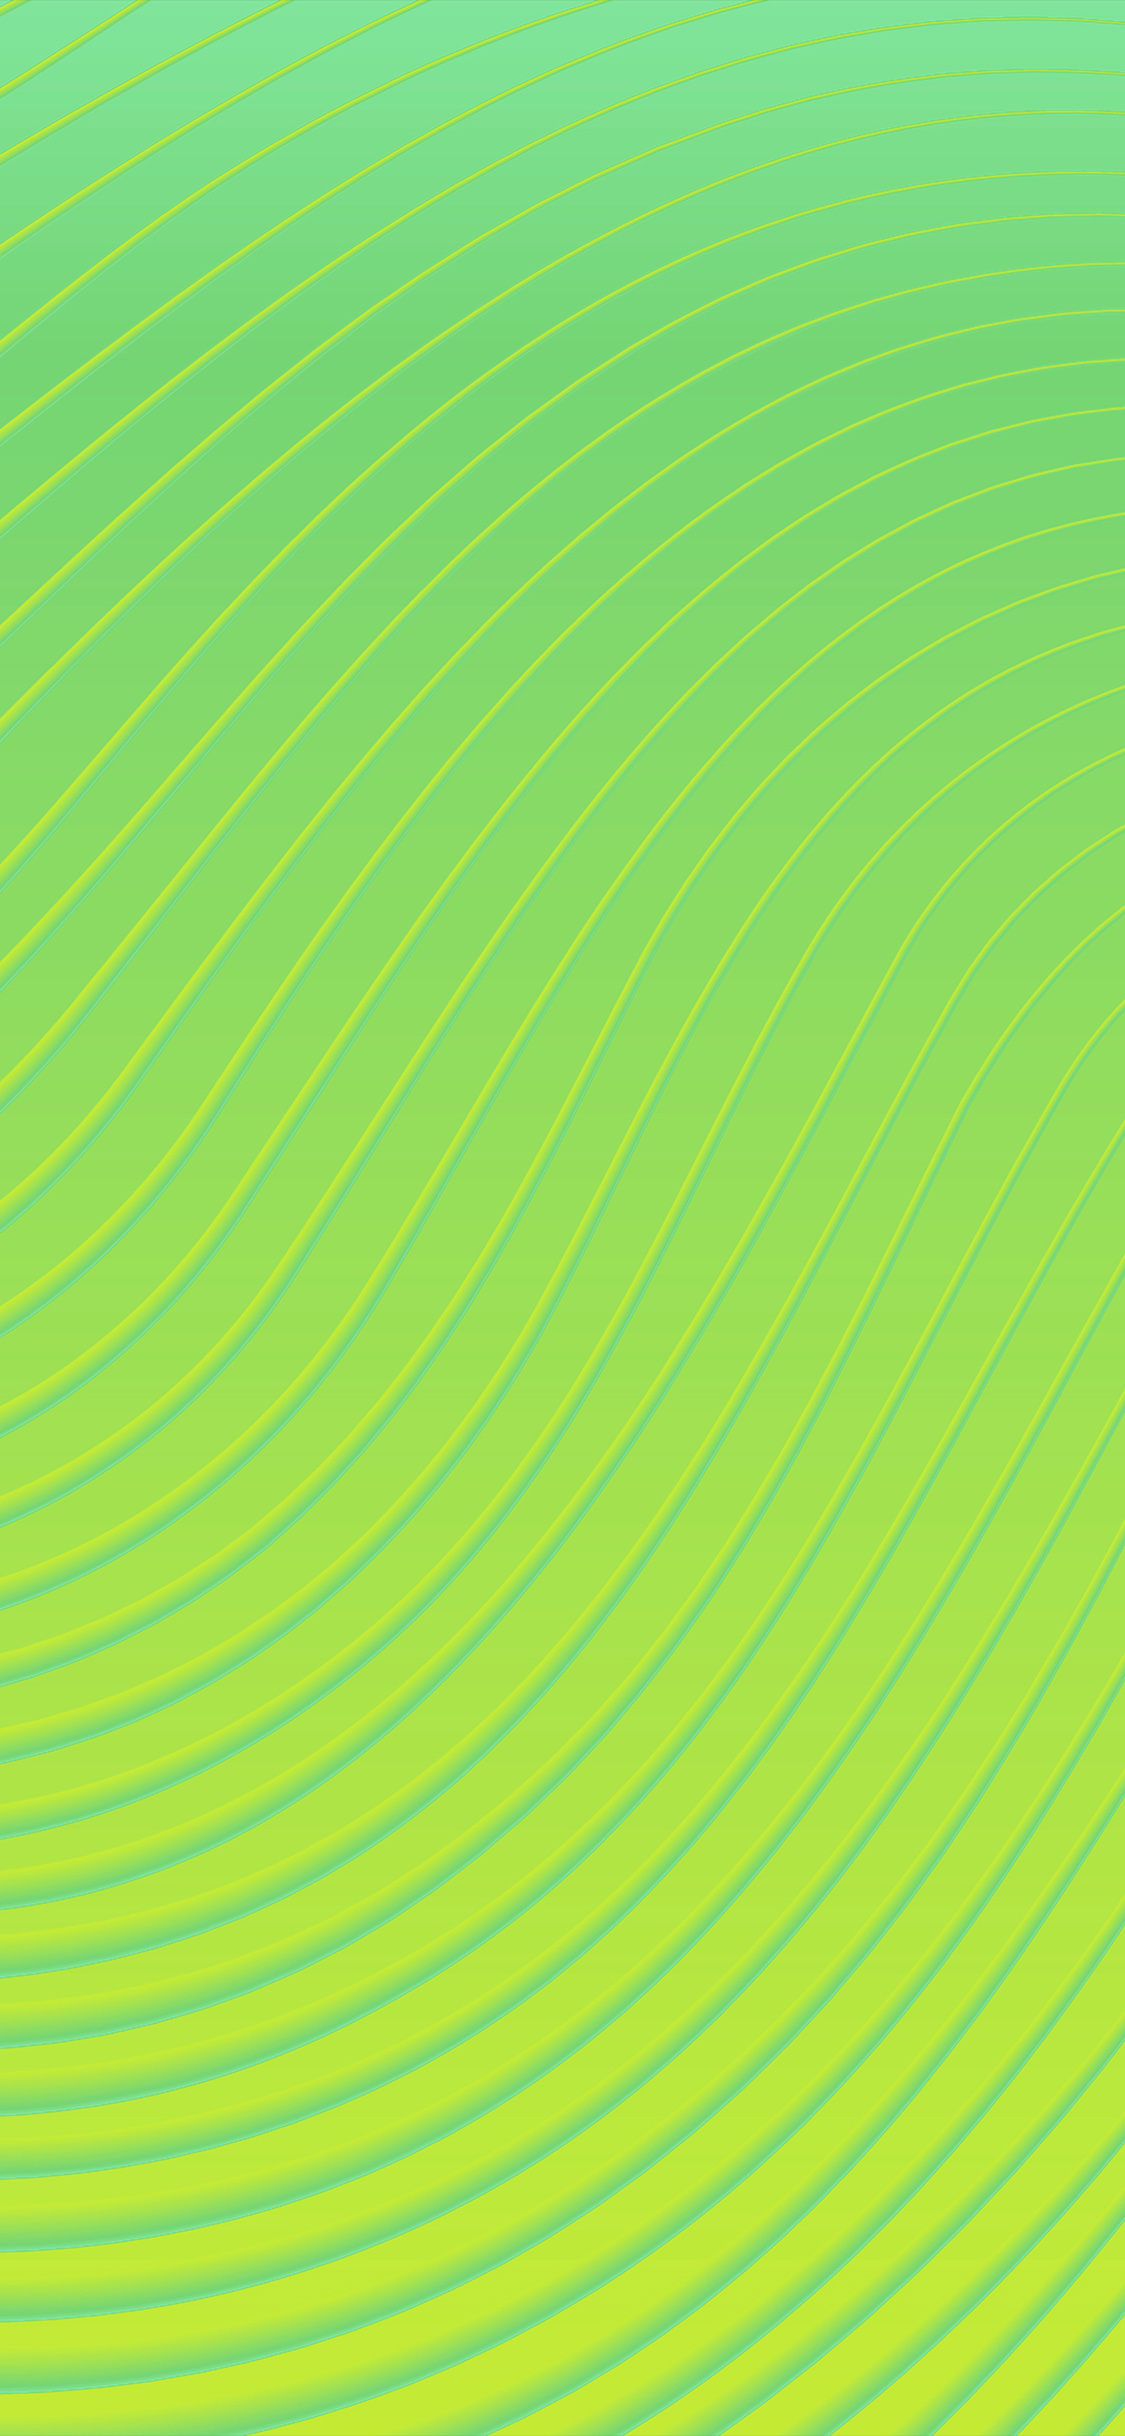 iPhonexpapers.com-Apple-iPhone-wallpaper-vp12-curve-green-yellow-pattern